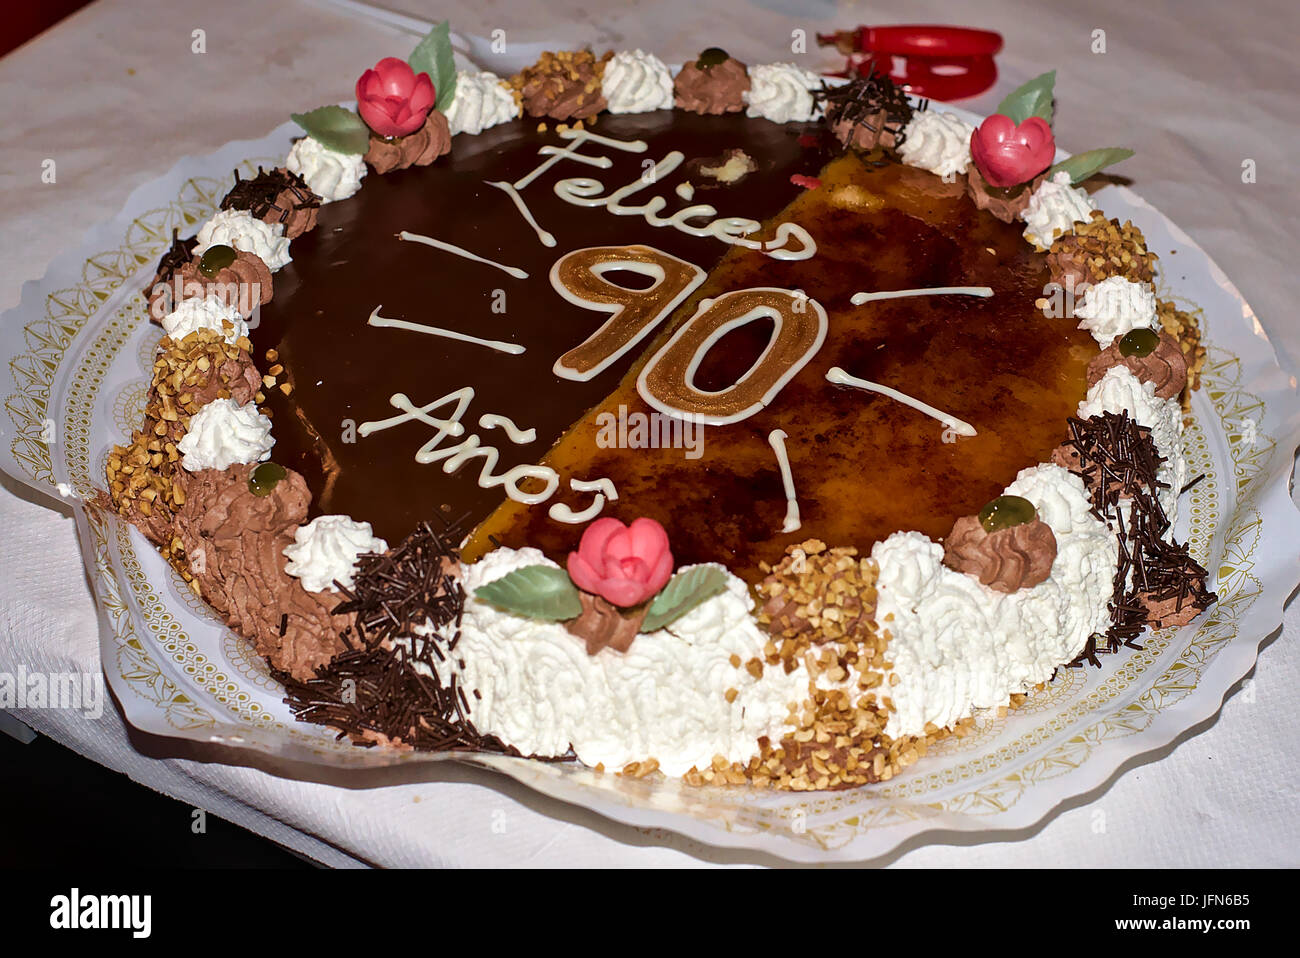 Delicious Two Flavor Birthday Cake With A Happy 90th Celebration As Decoration Made Of Cream Chocolate Fruits And Almonds